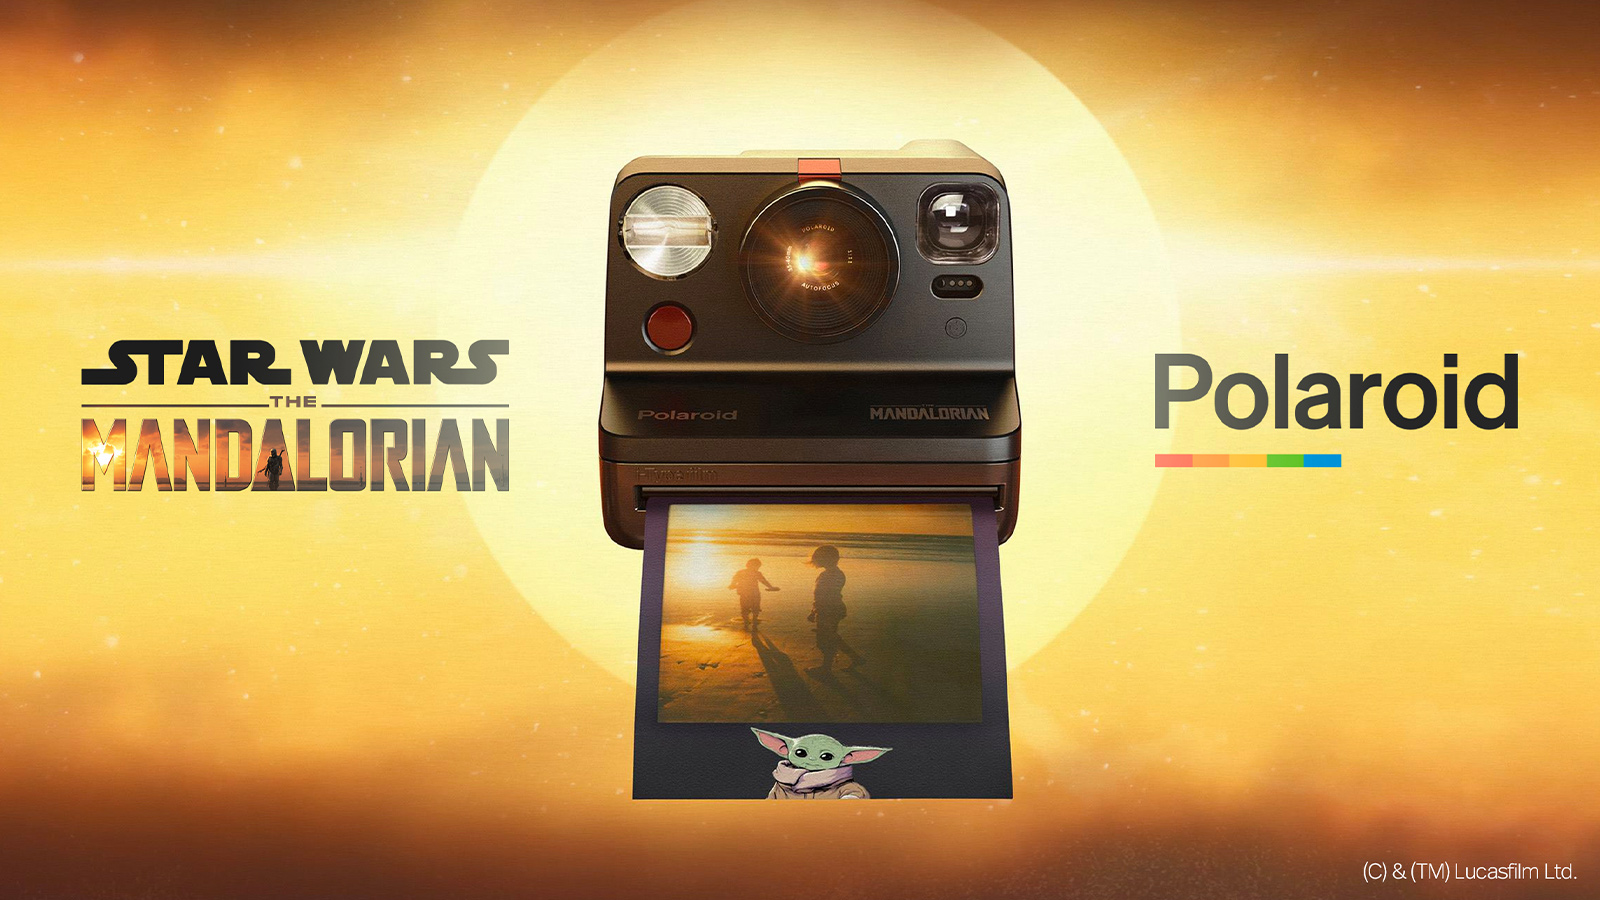 Polaroid Star Wars: The Mandalorian Edition